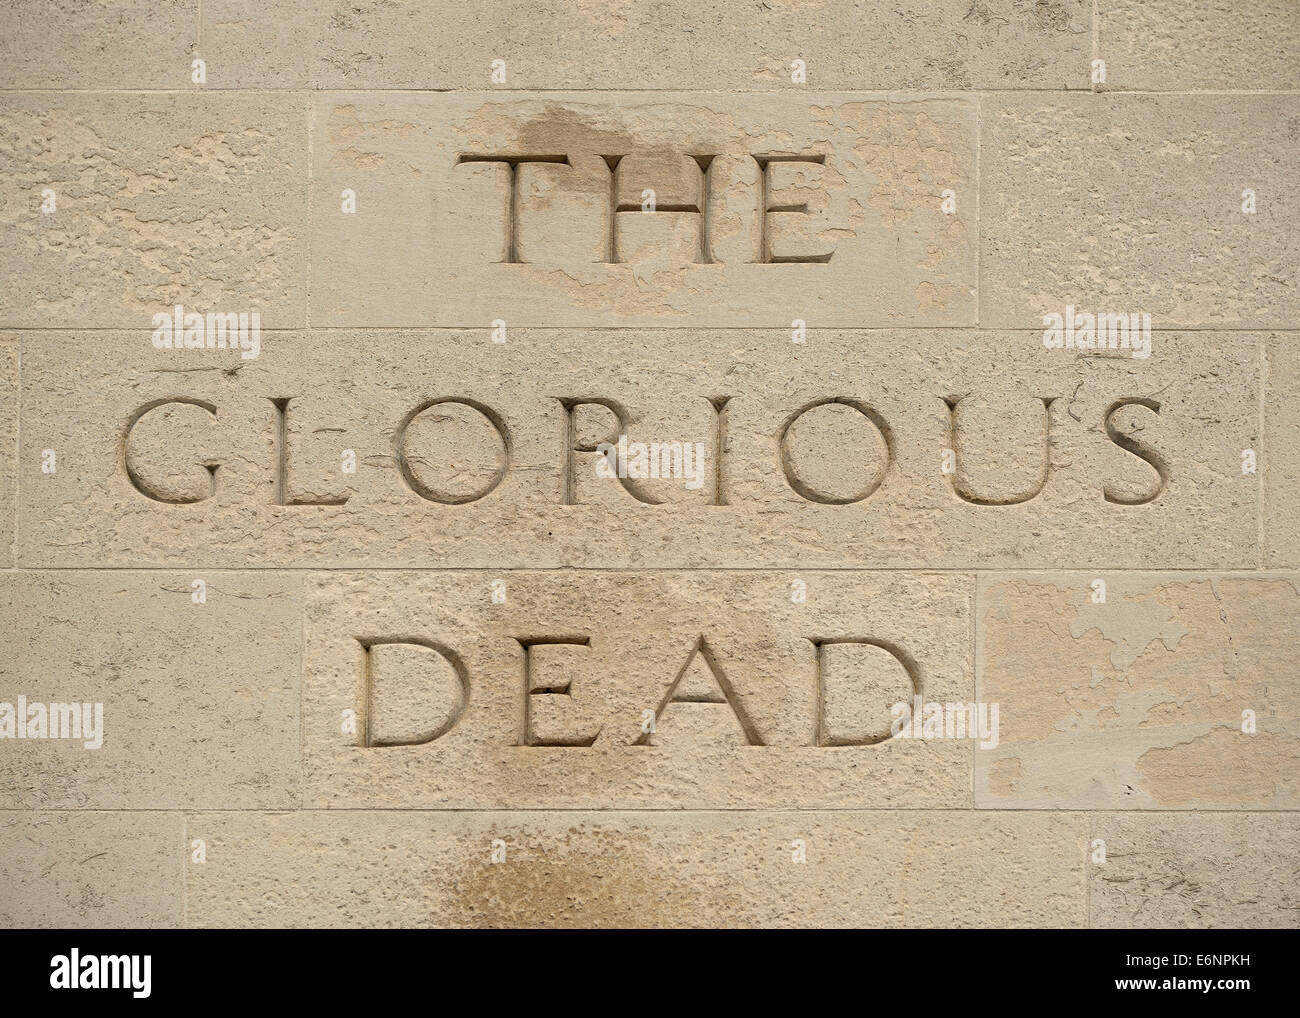 The Cenotaph War Memorial, Close Up, Whitehall, London, UK. - Stock Image